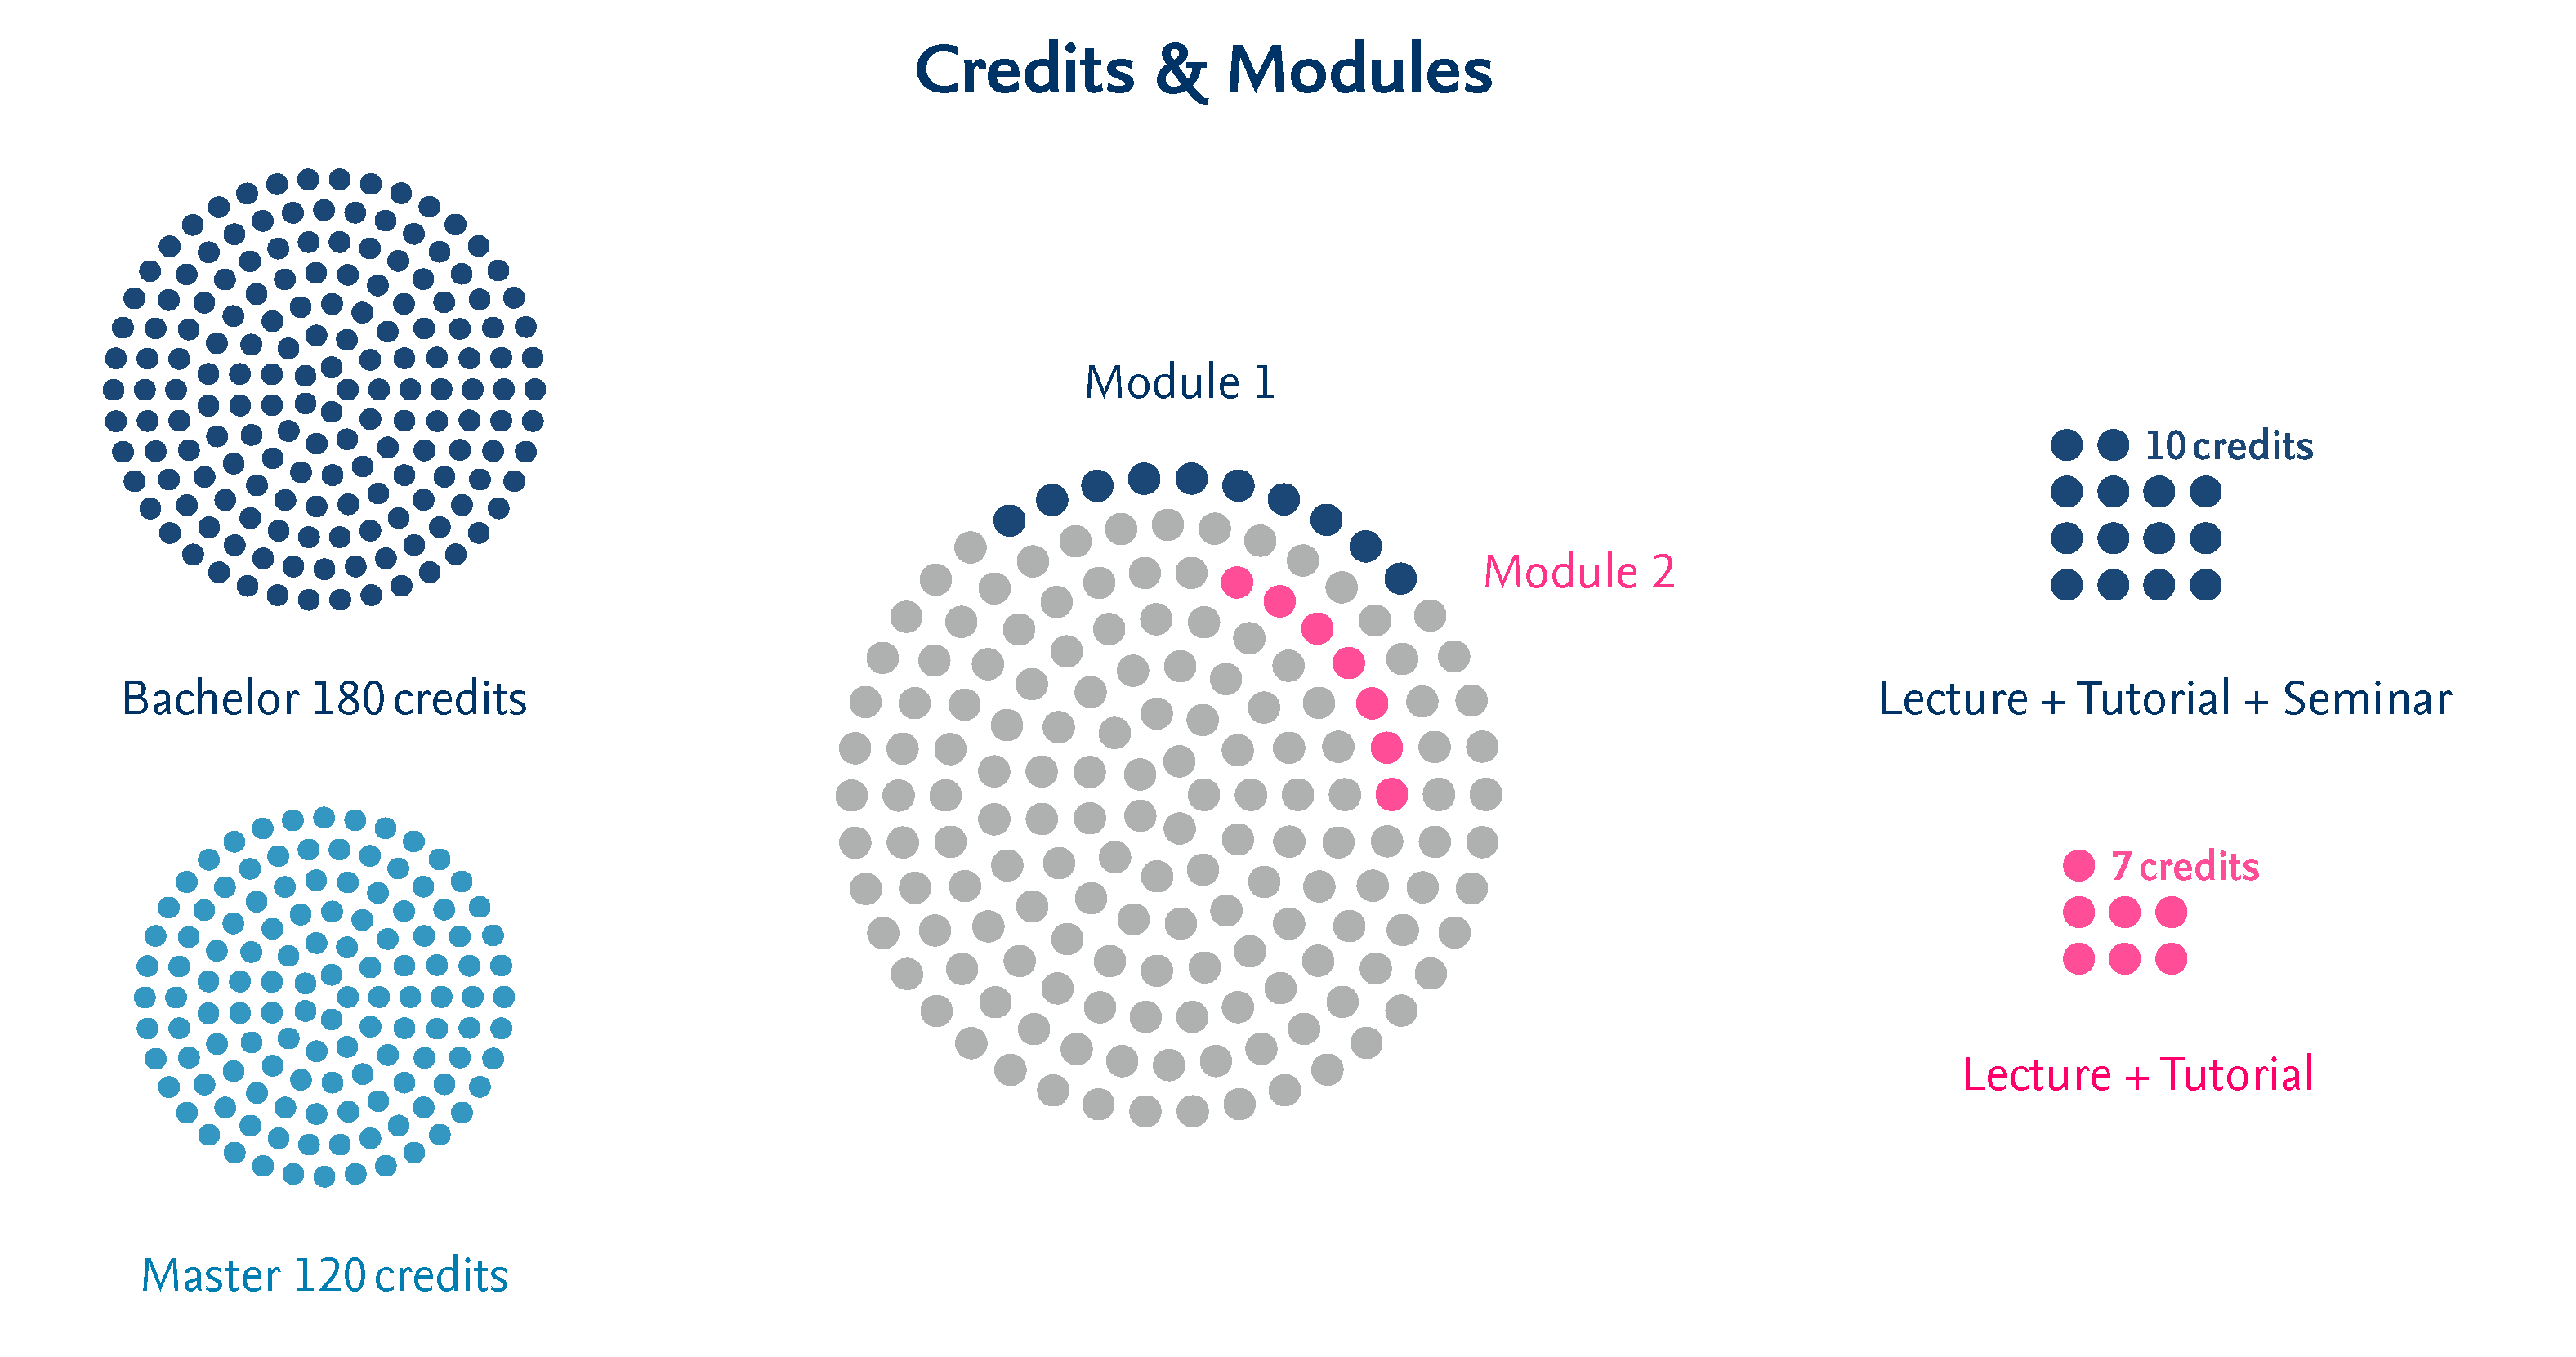 Credit points and modules